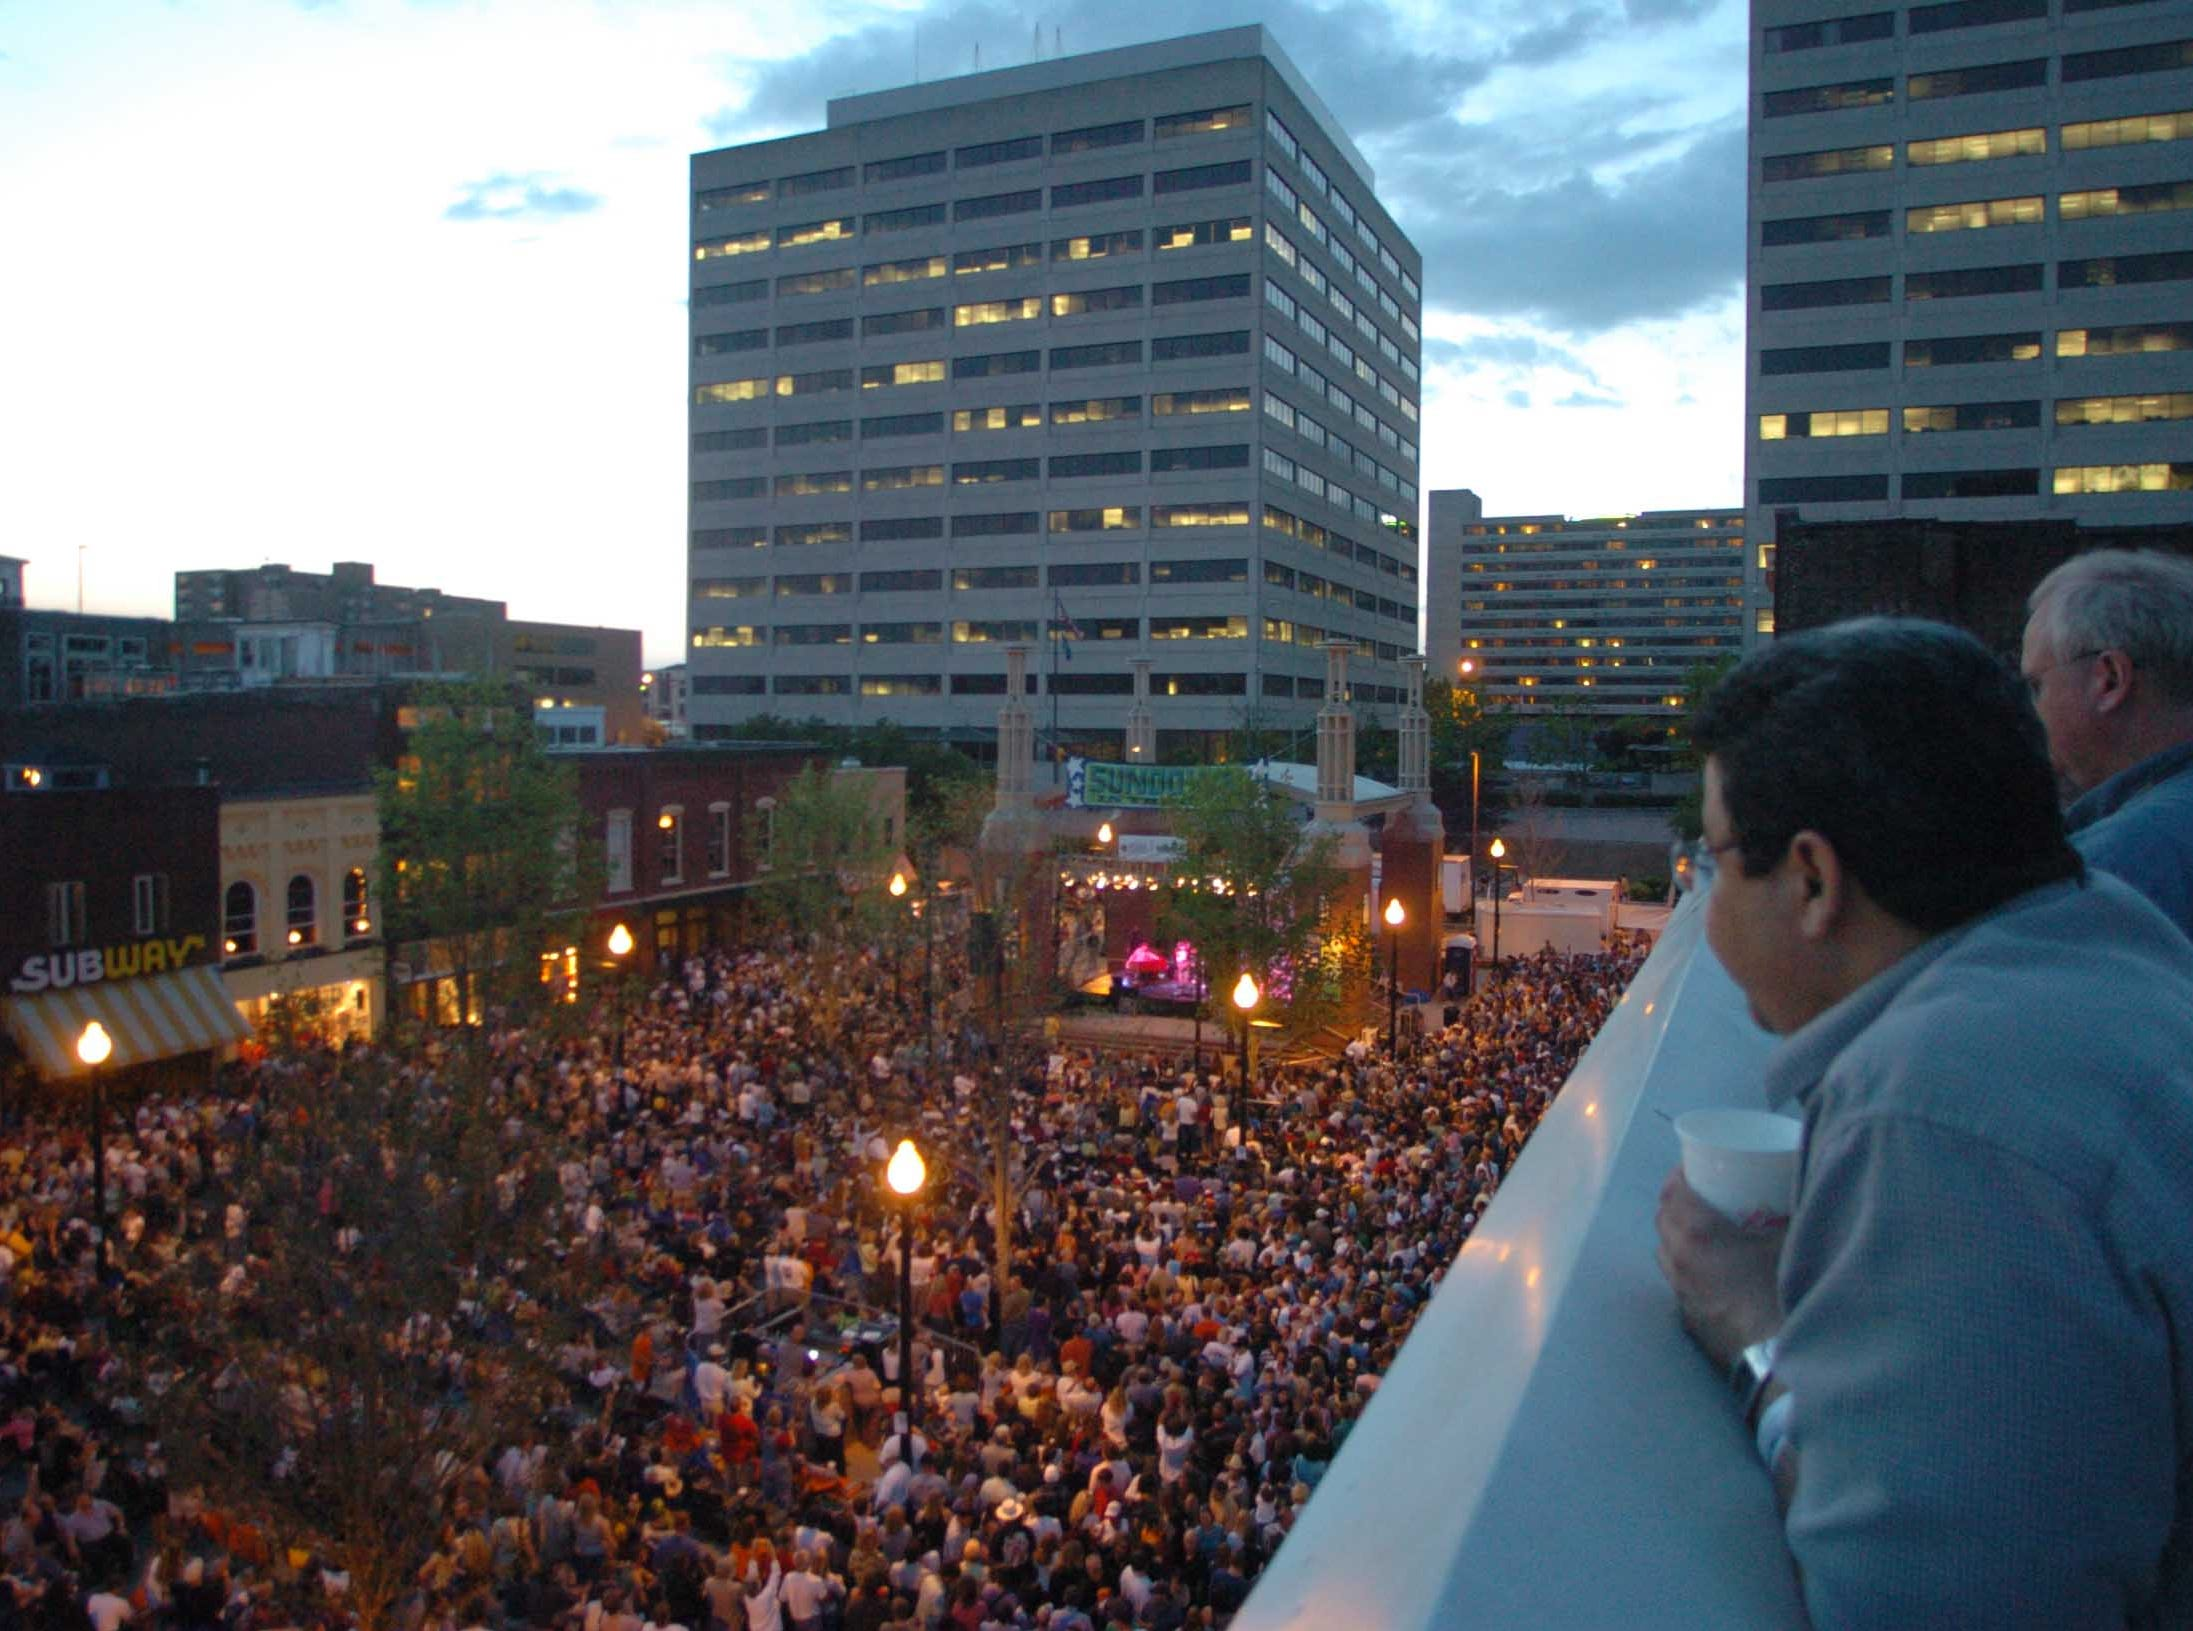 In an April 21, 2005 photograph, a large crowd turns out to see Hector Qirko Band and Steve Winwood perform during Sundown in the City at Market Square.  (Jeff Adkins/News Sentinel)